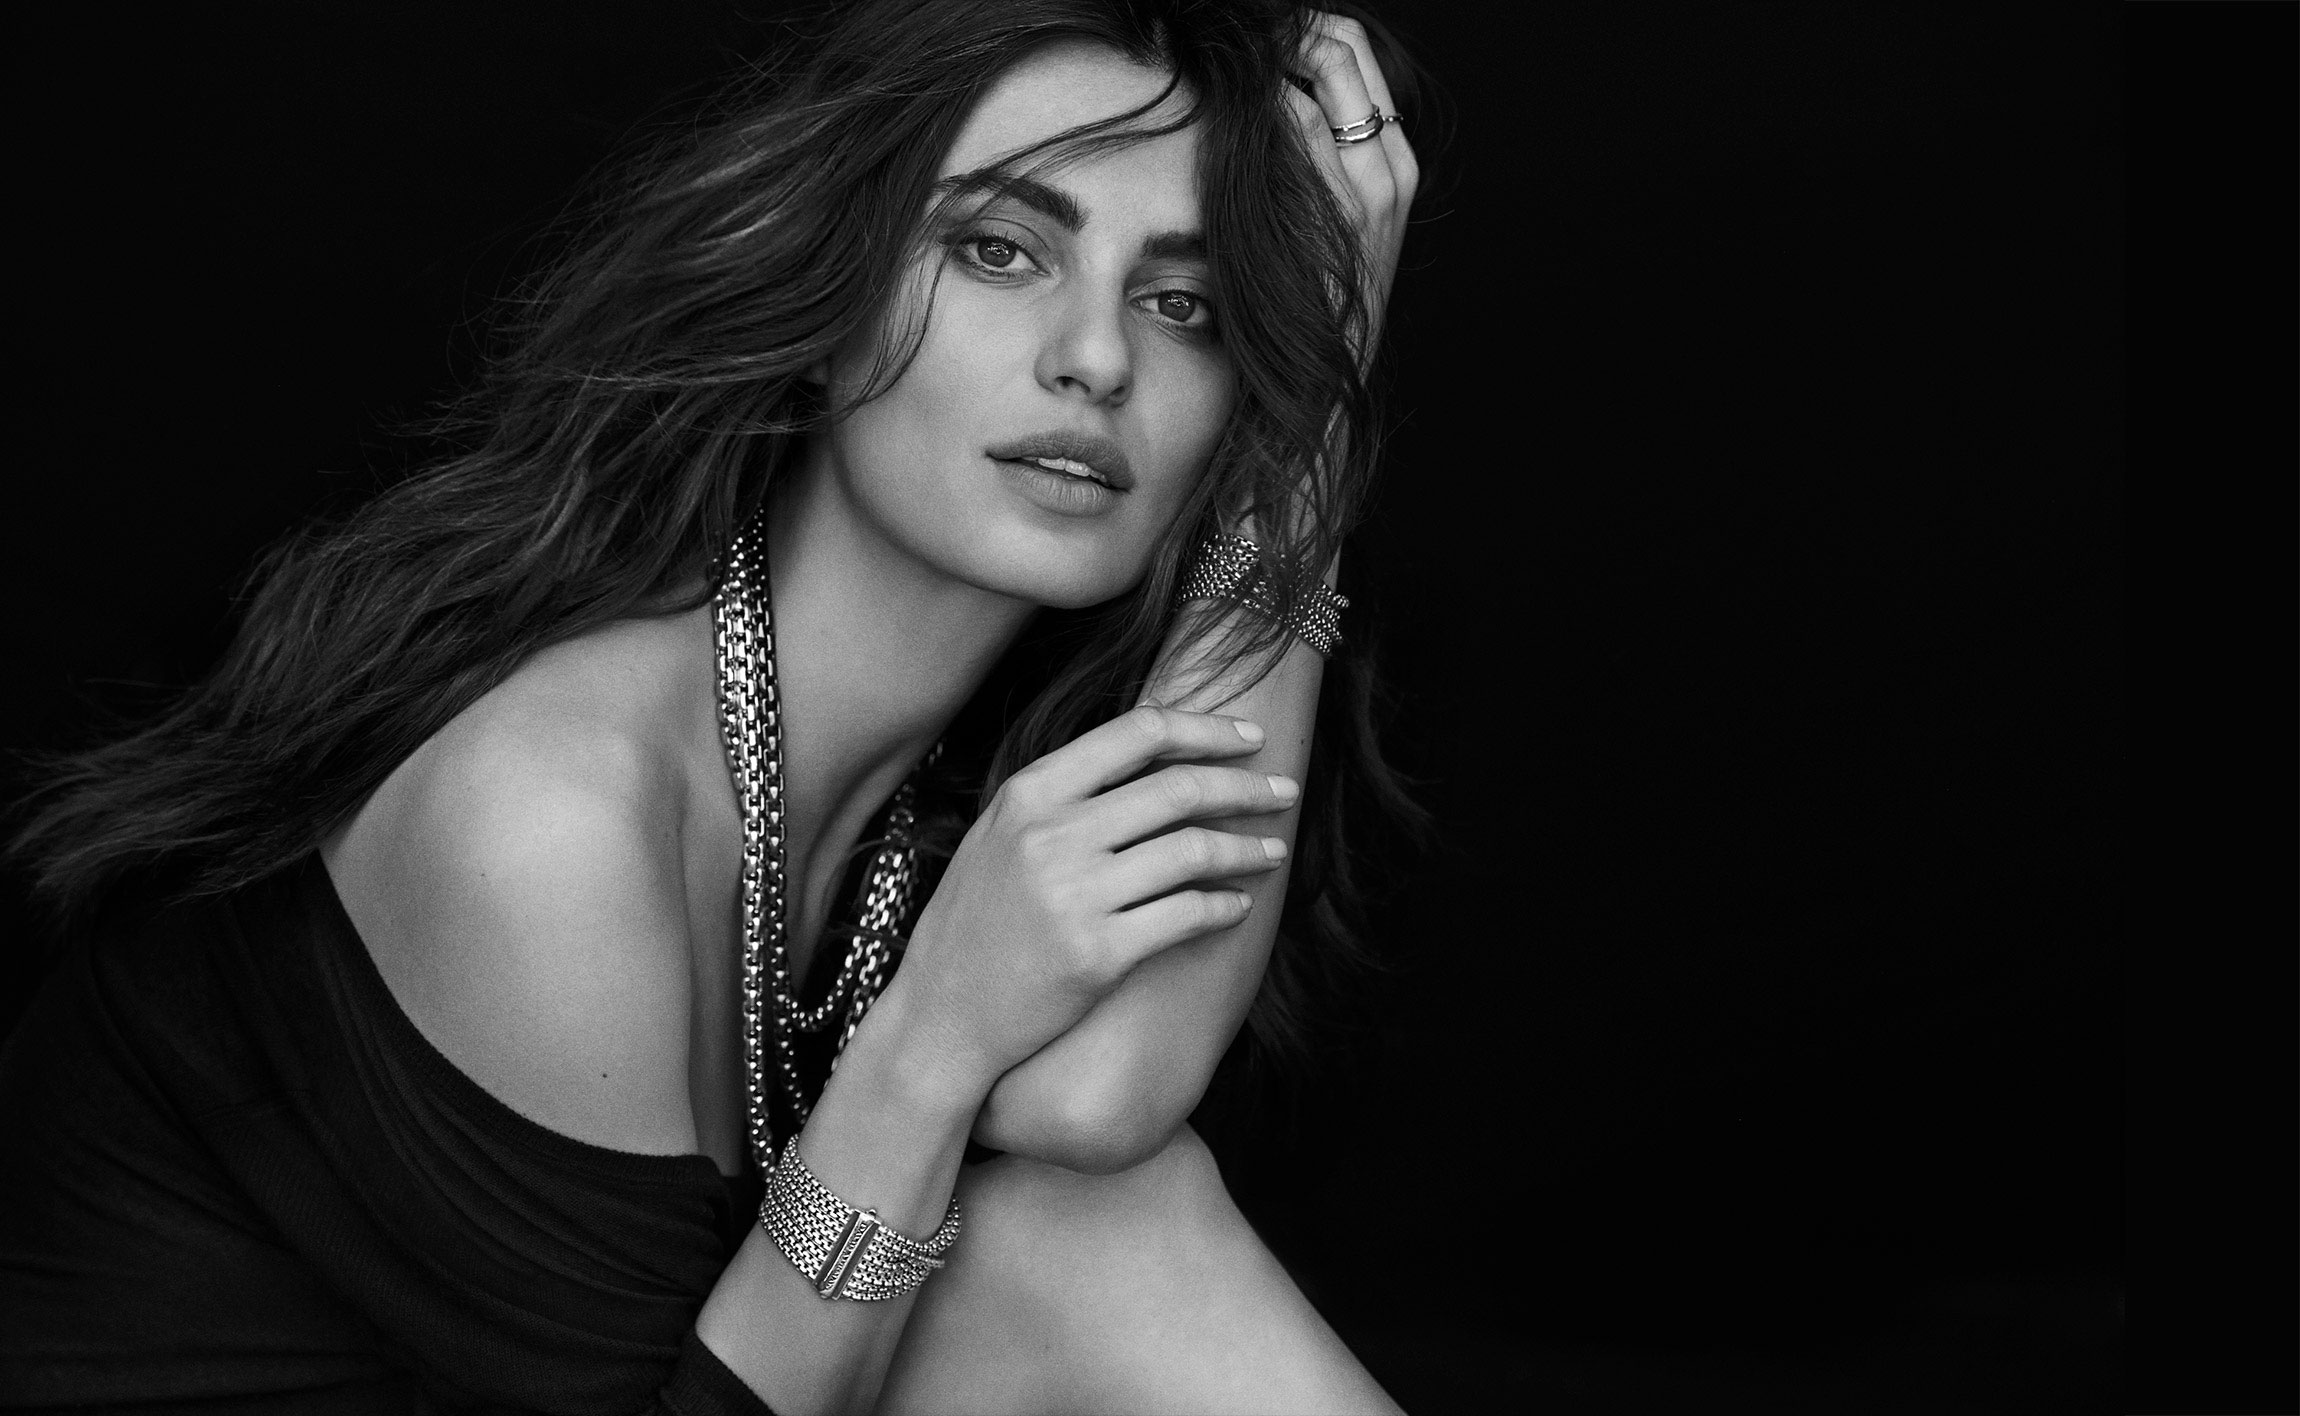 Art Direction for David Yurman Featuring Catrinel Menghia